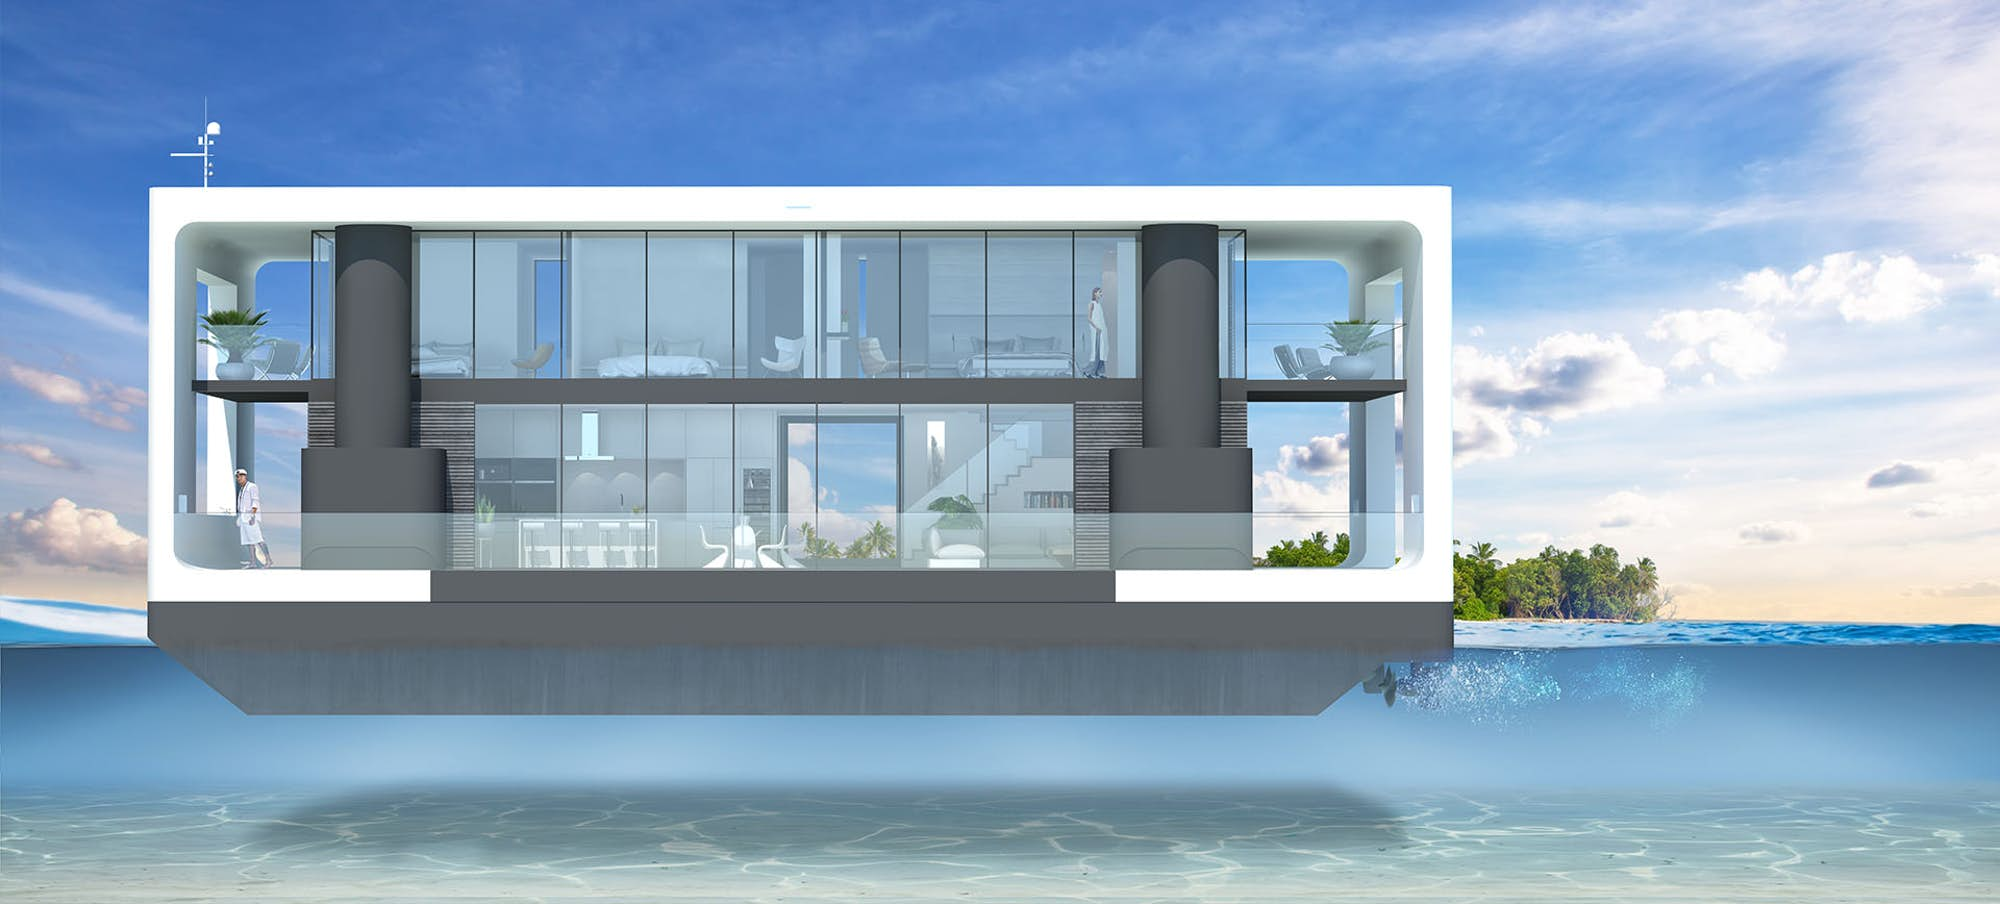 A different view every week: The self-elevating, off-grid, luxury floating home